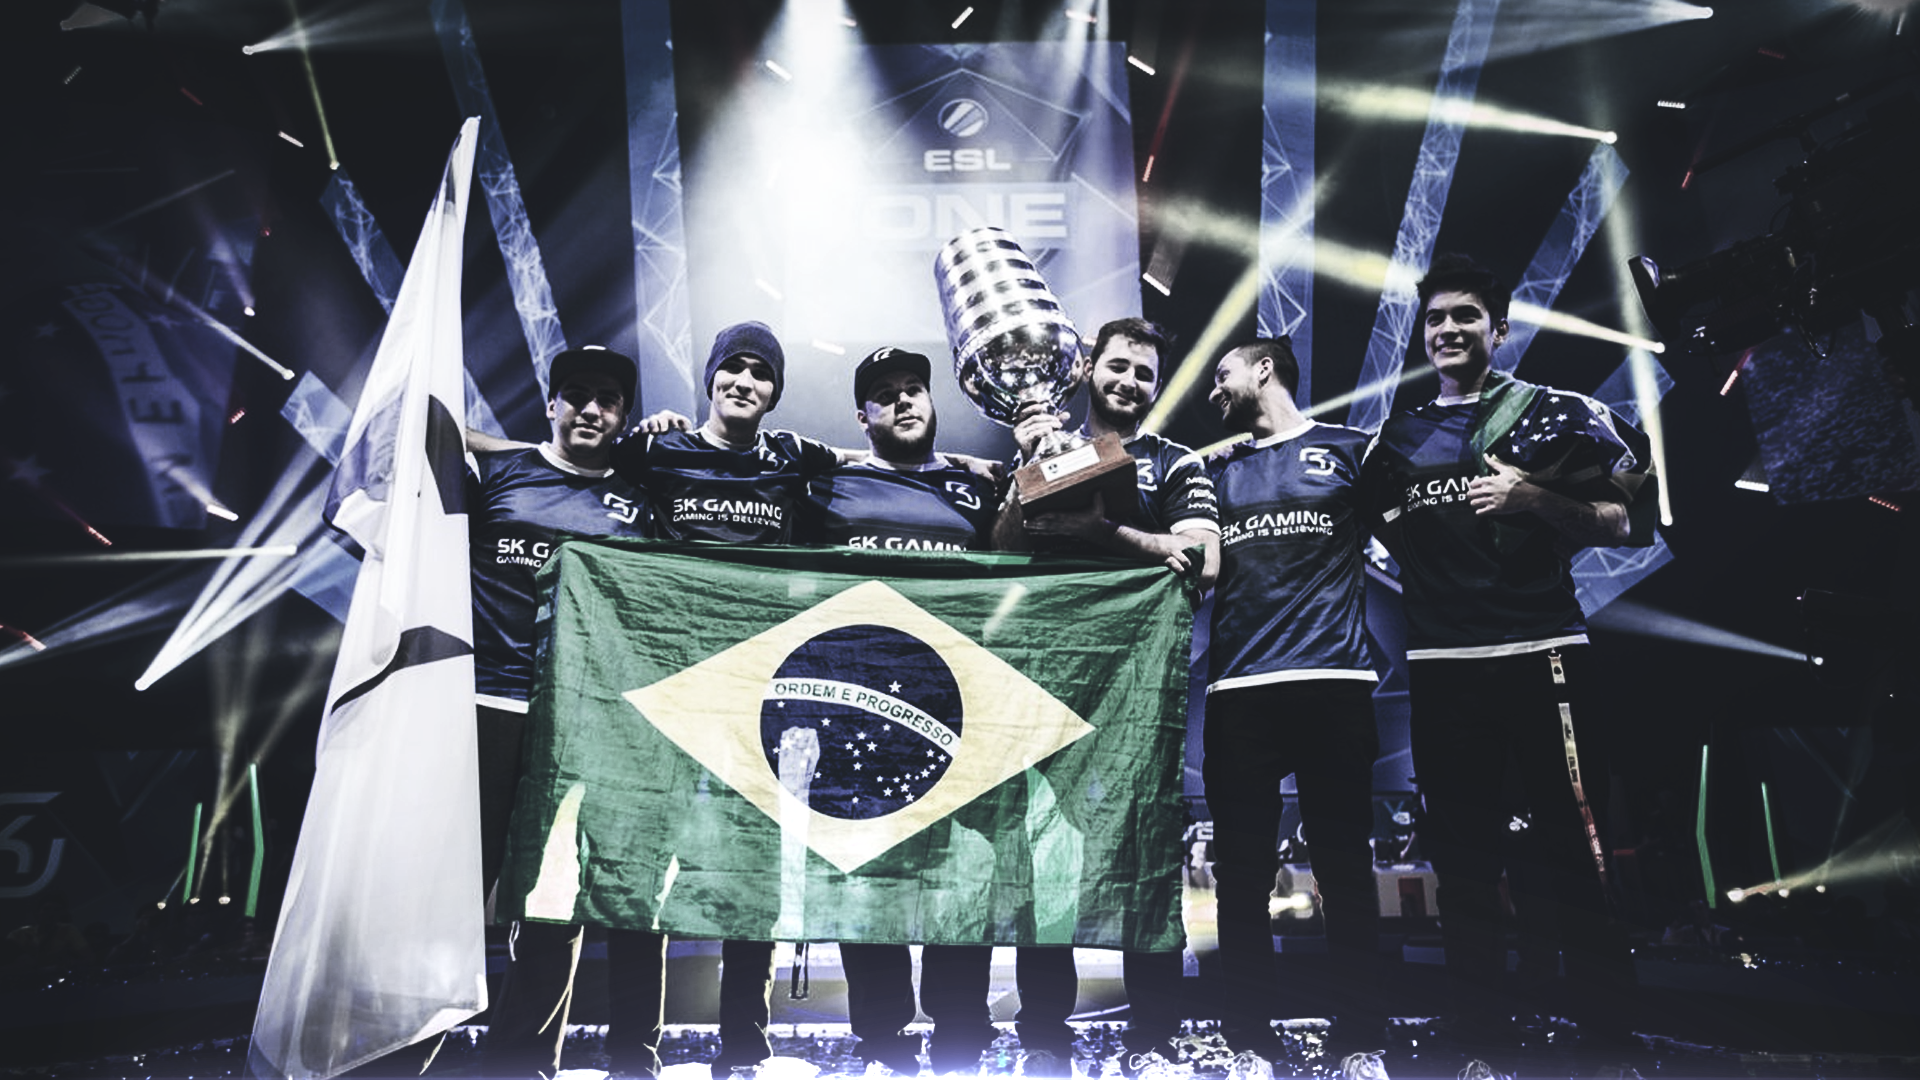 Sk Gaming Wallpaper Full Hd Esl One Cologne 2016 By